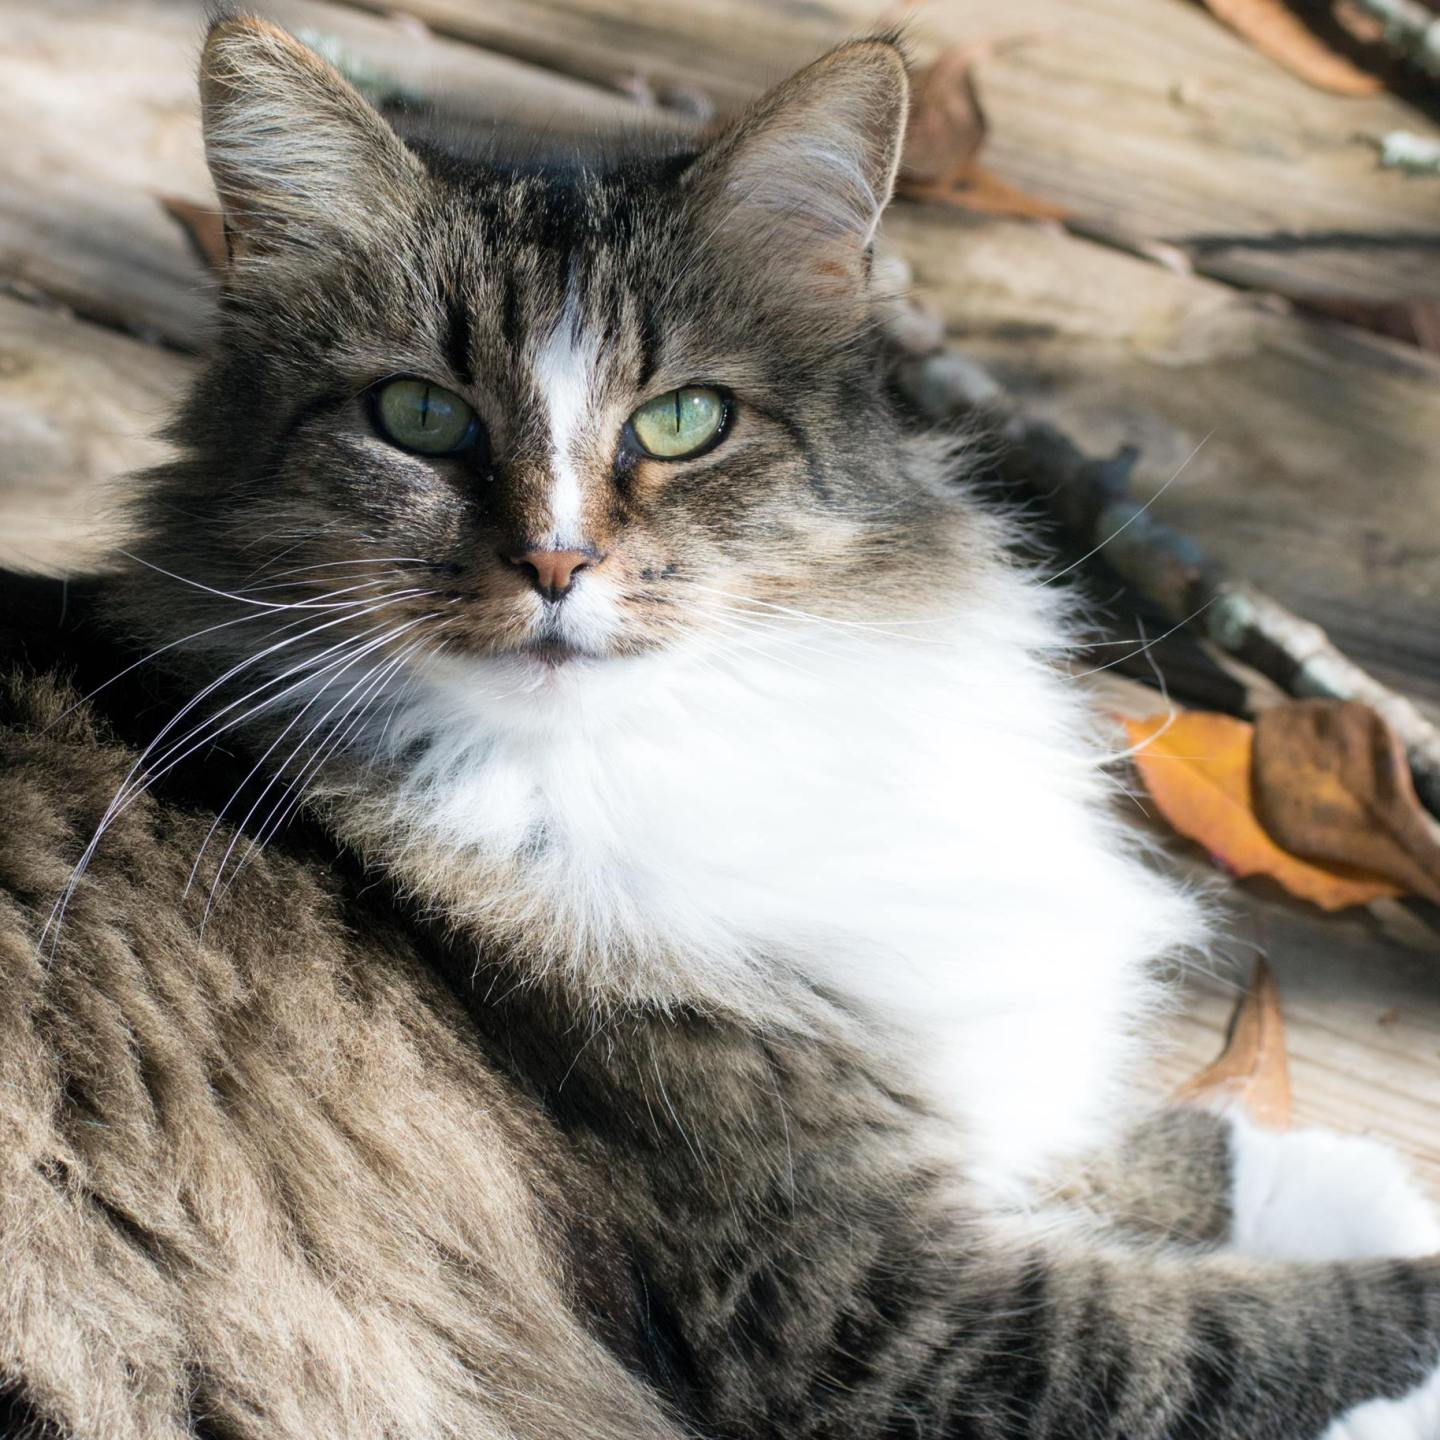 Is Cannabis Safe for Cats?